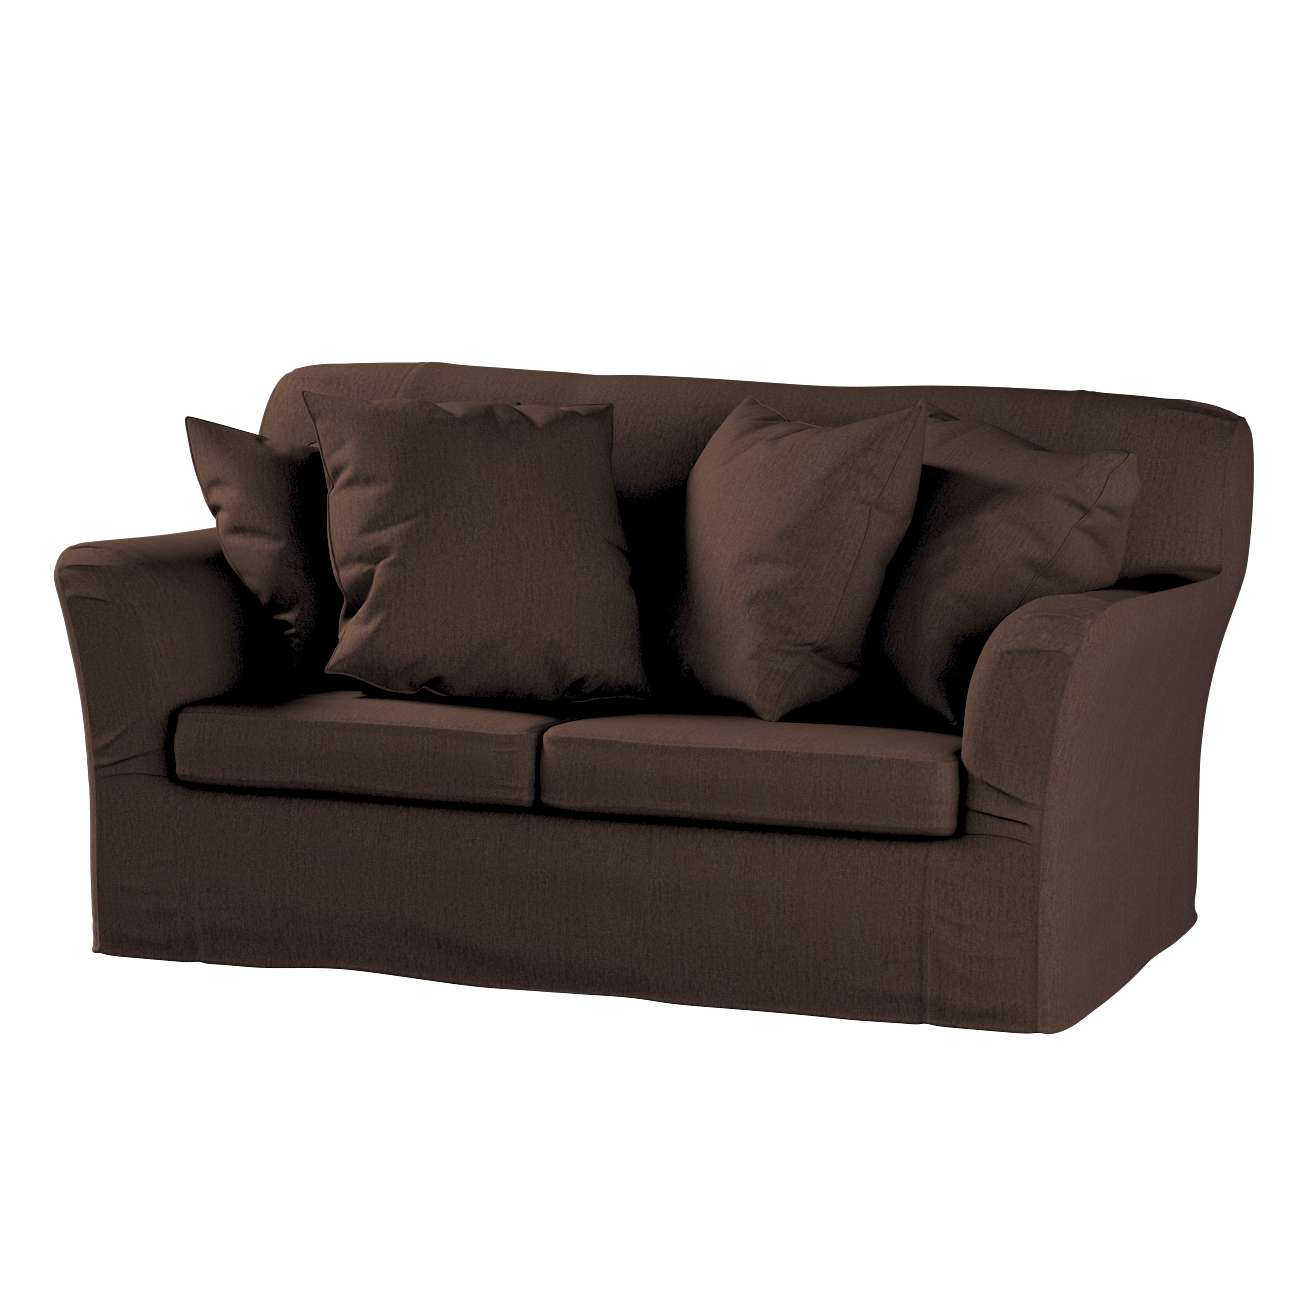 Tomelilla 2-seater sofa cover Tomelilla 2-seat sofa in collection Chenille, fabric: 702-18